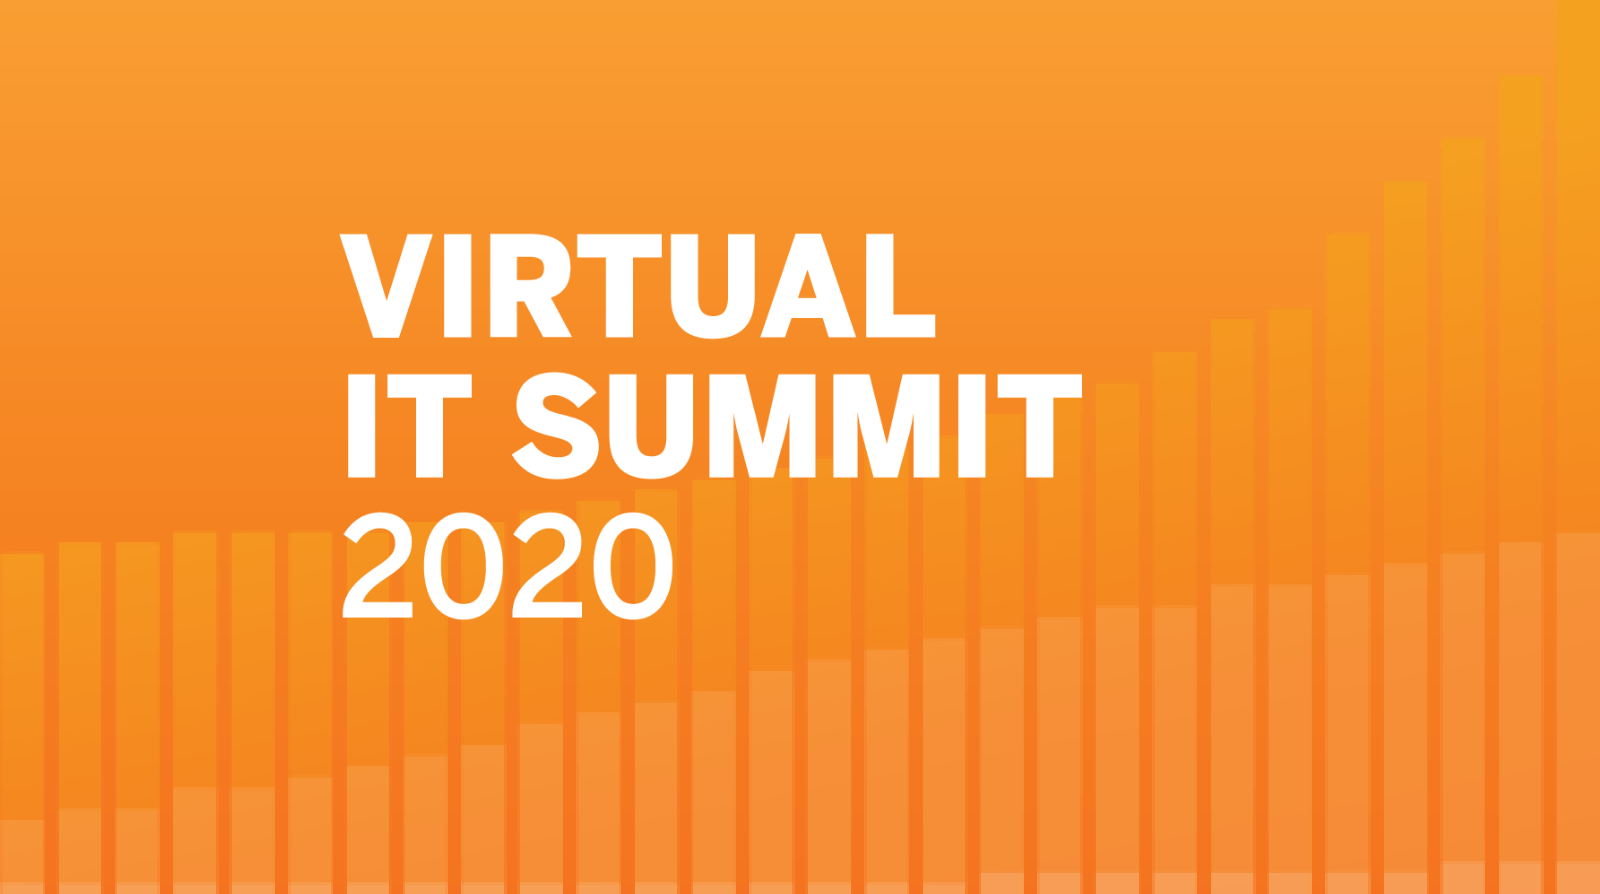 Virtual IT Summit 2020